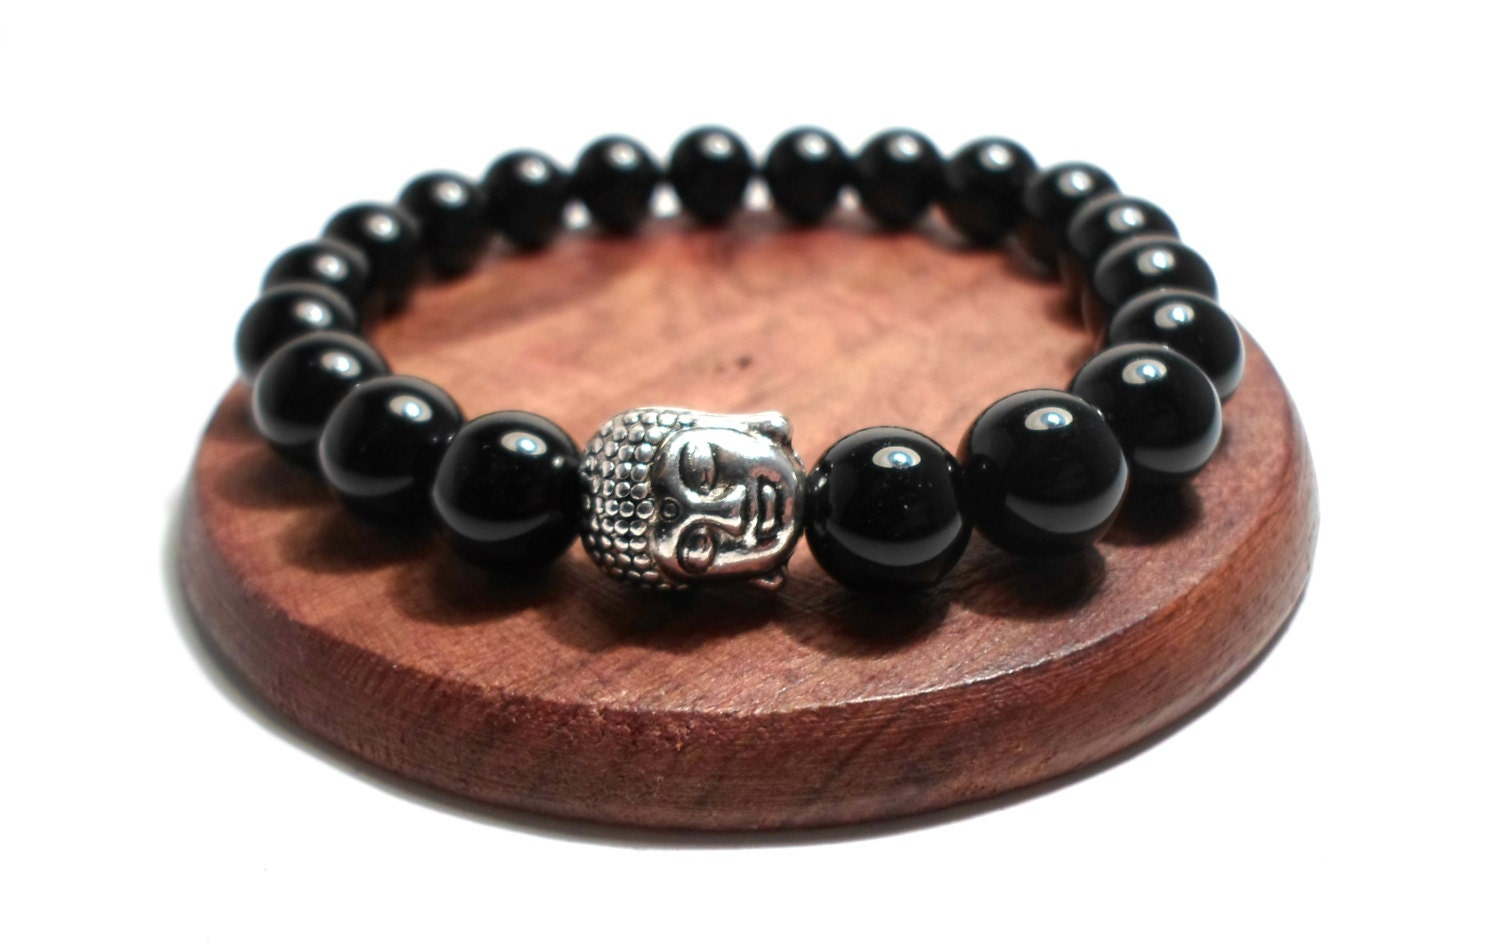 masculine mala for men savanna lotus beads bracelets caymancode beaded bracelet